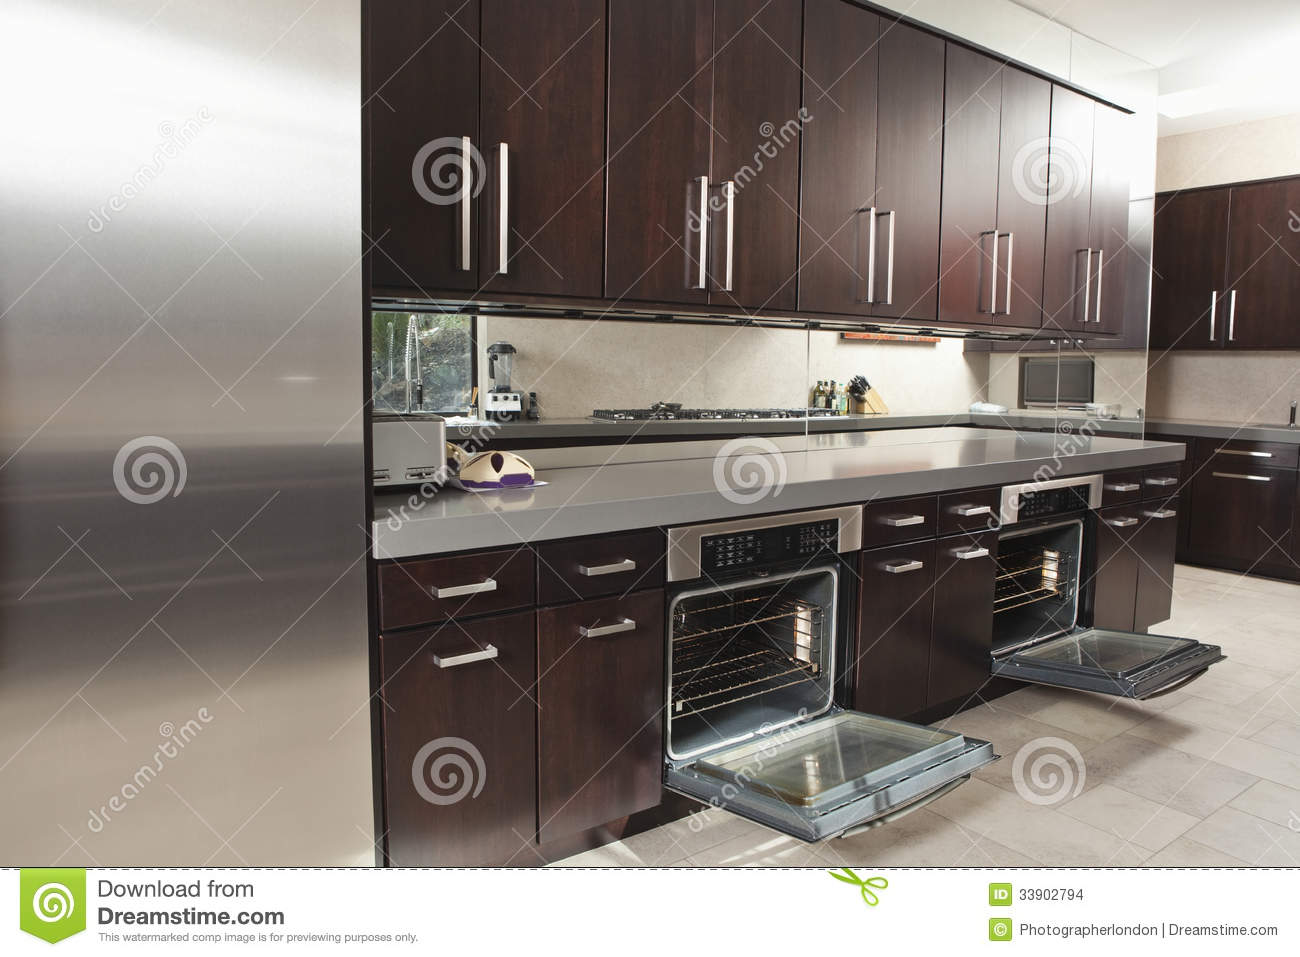 commercial kitchen with open oven and cabinets stock images